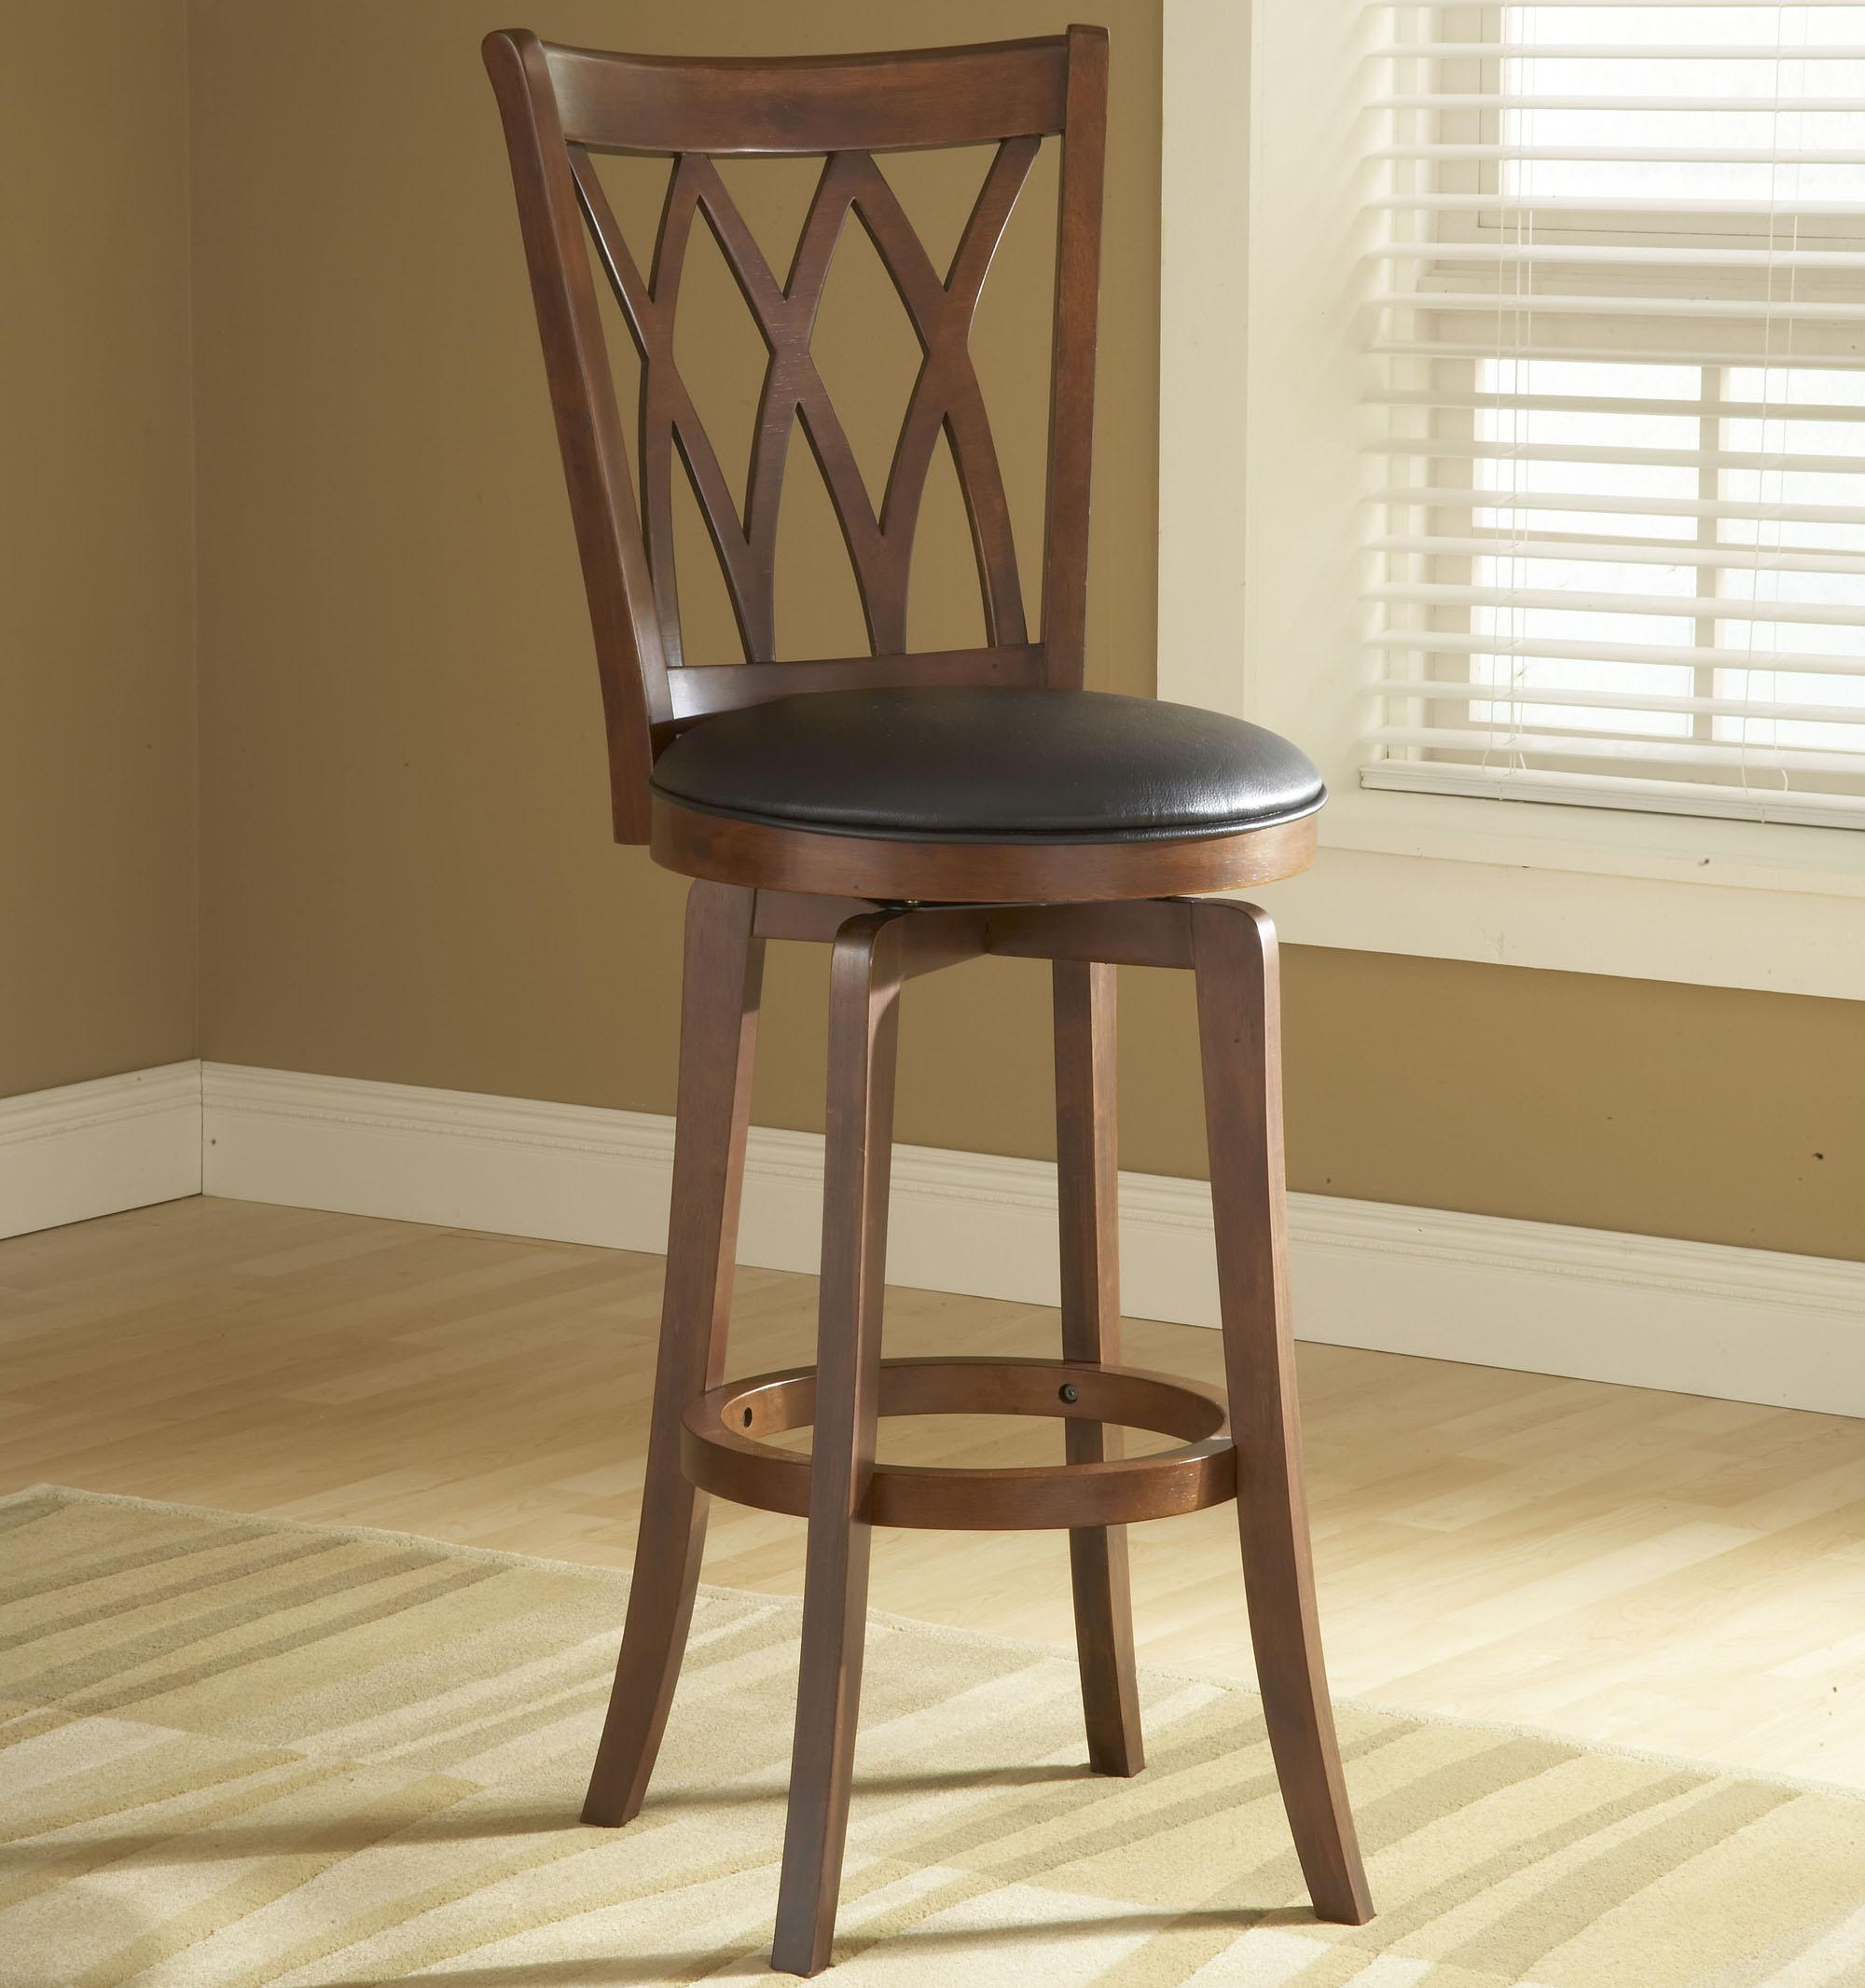 Wood Stools 24 Quot Counter Height Mansfield Swivel Stool By